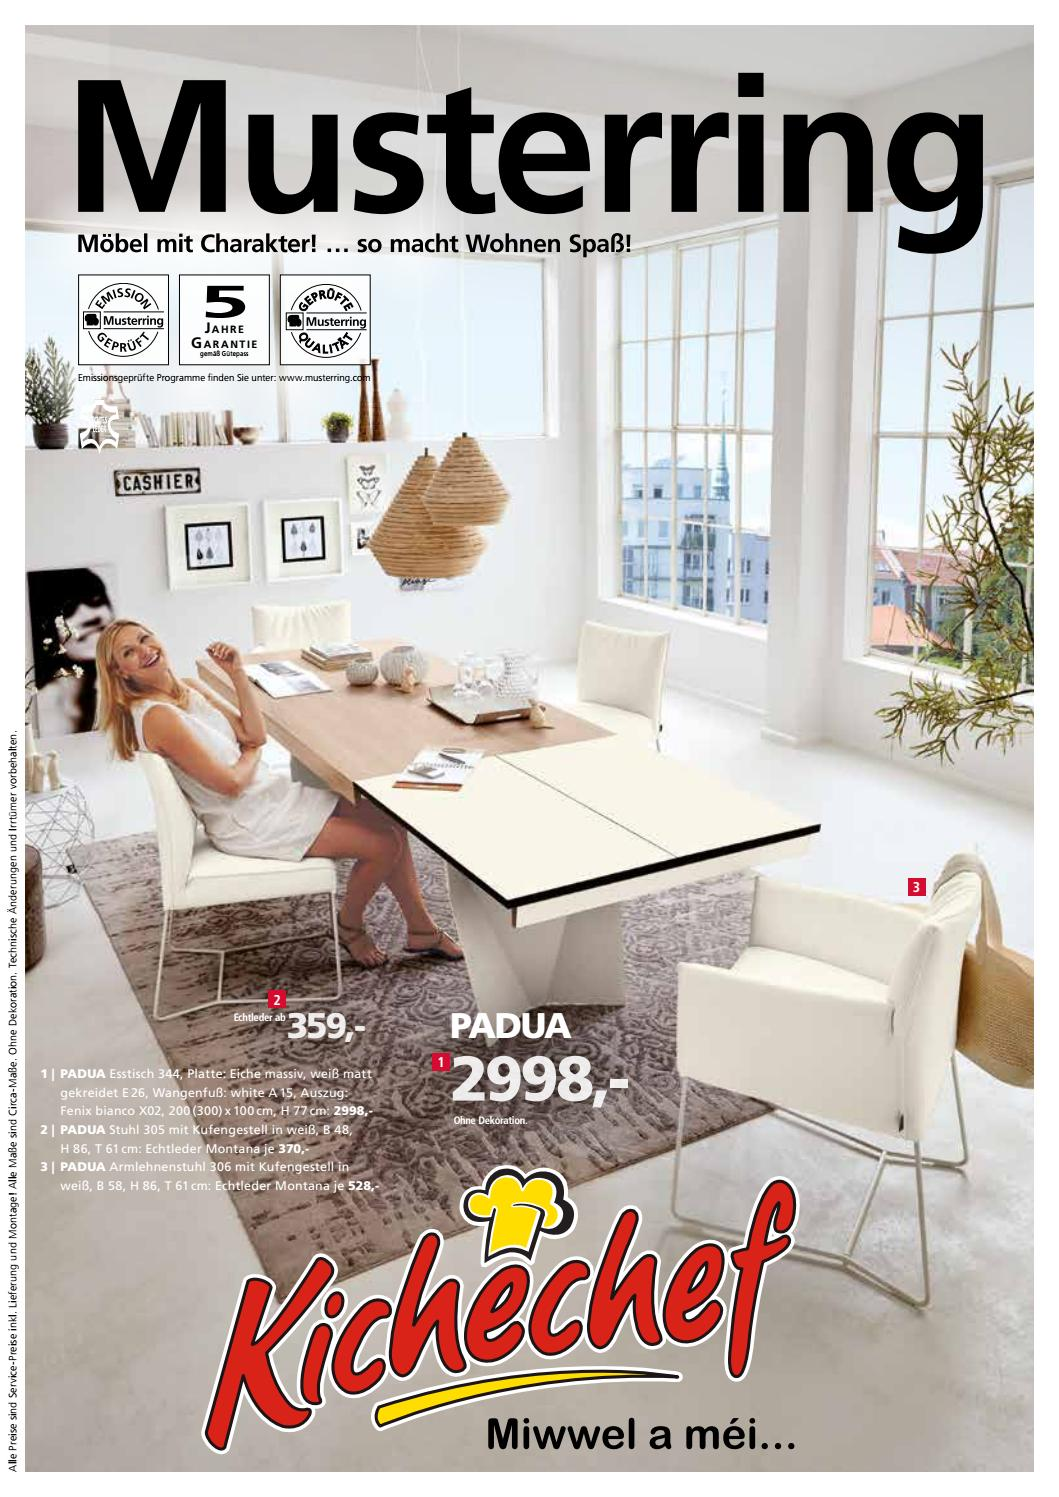 Musterring Q Media Couchtisch Kichechef Musterring By Ip Luxembourg Issuu